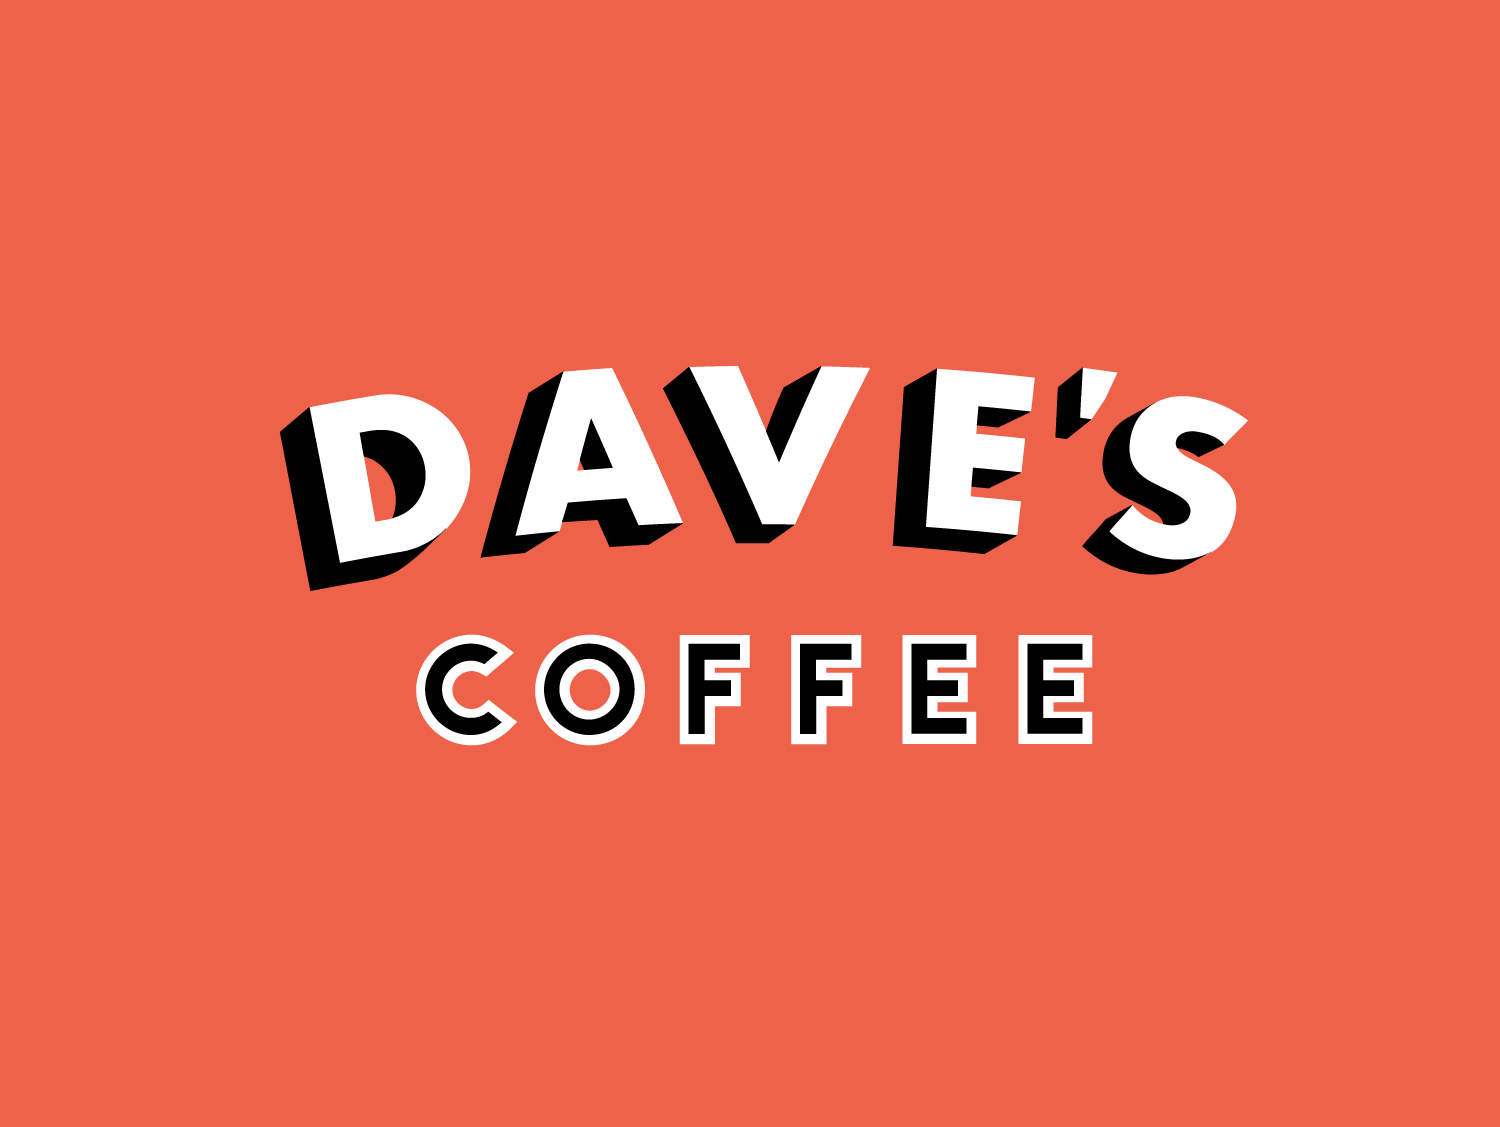 Daves-Coffee-logo-03.jpg